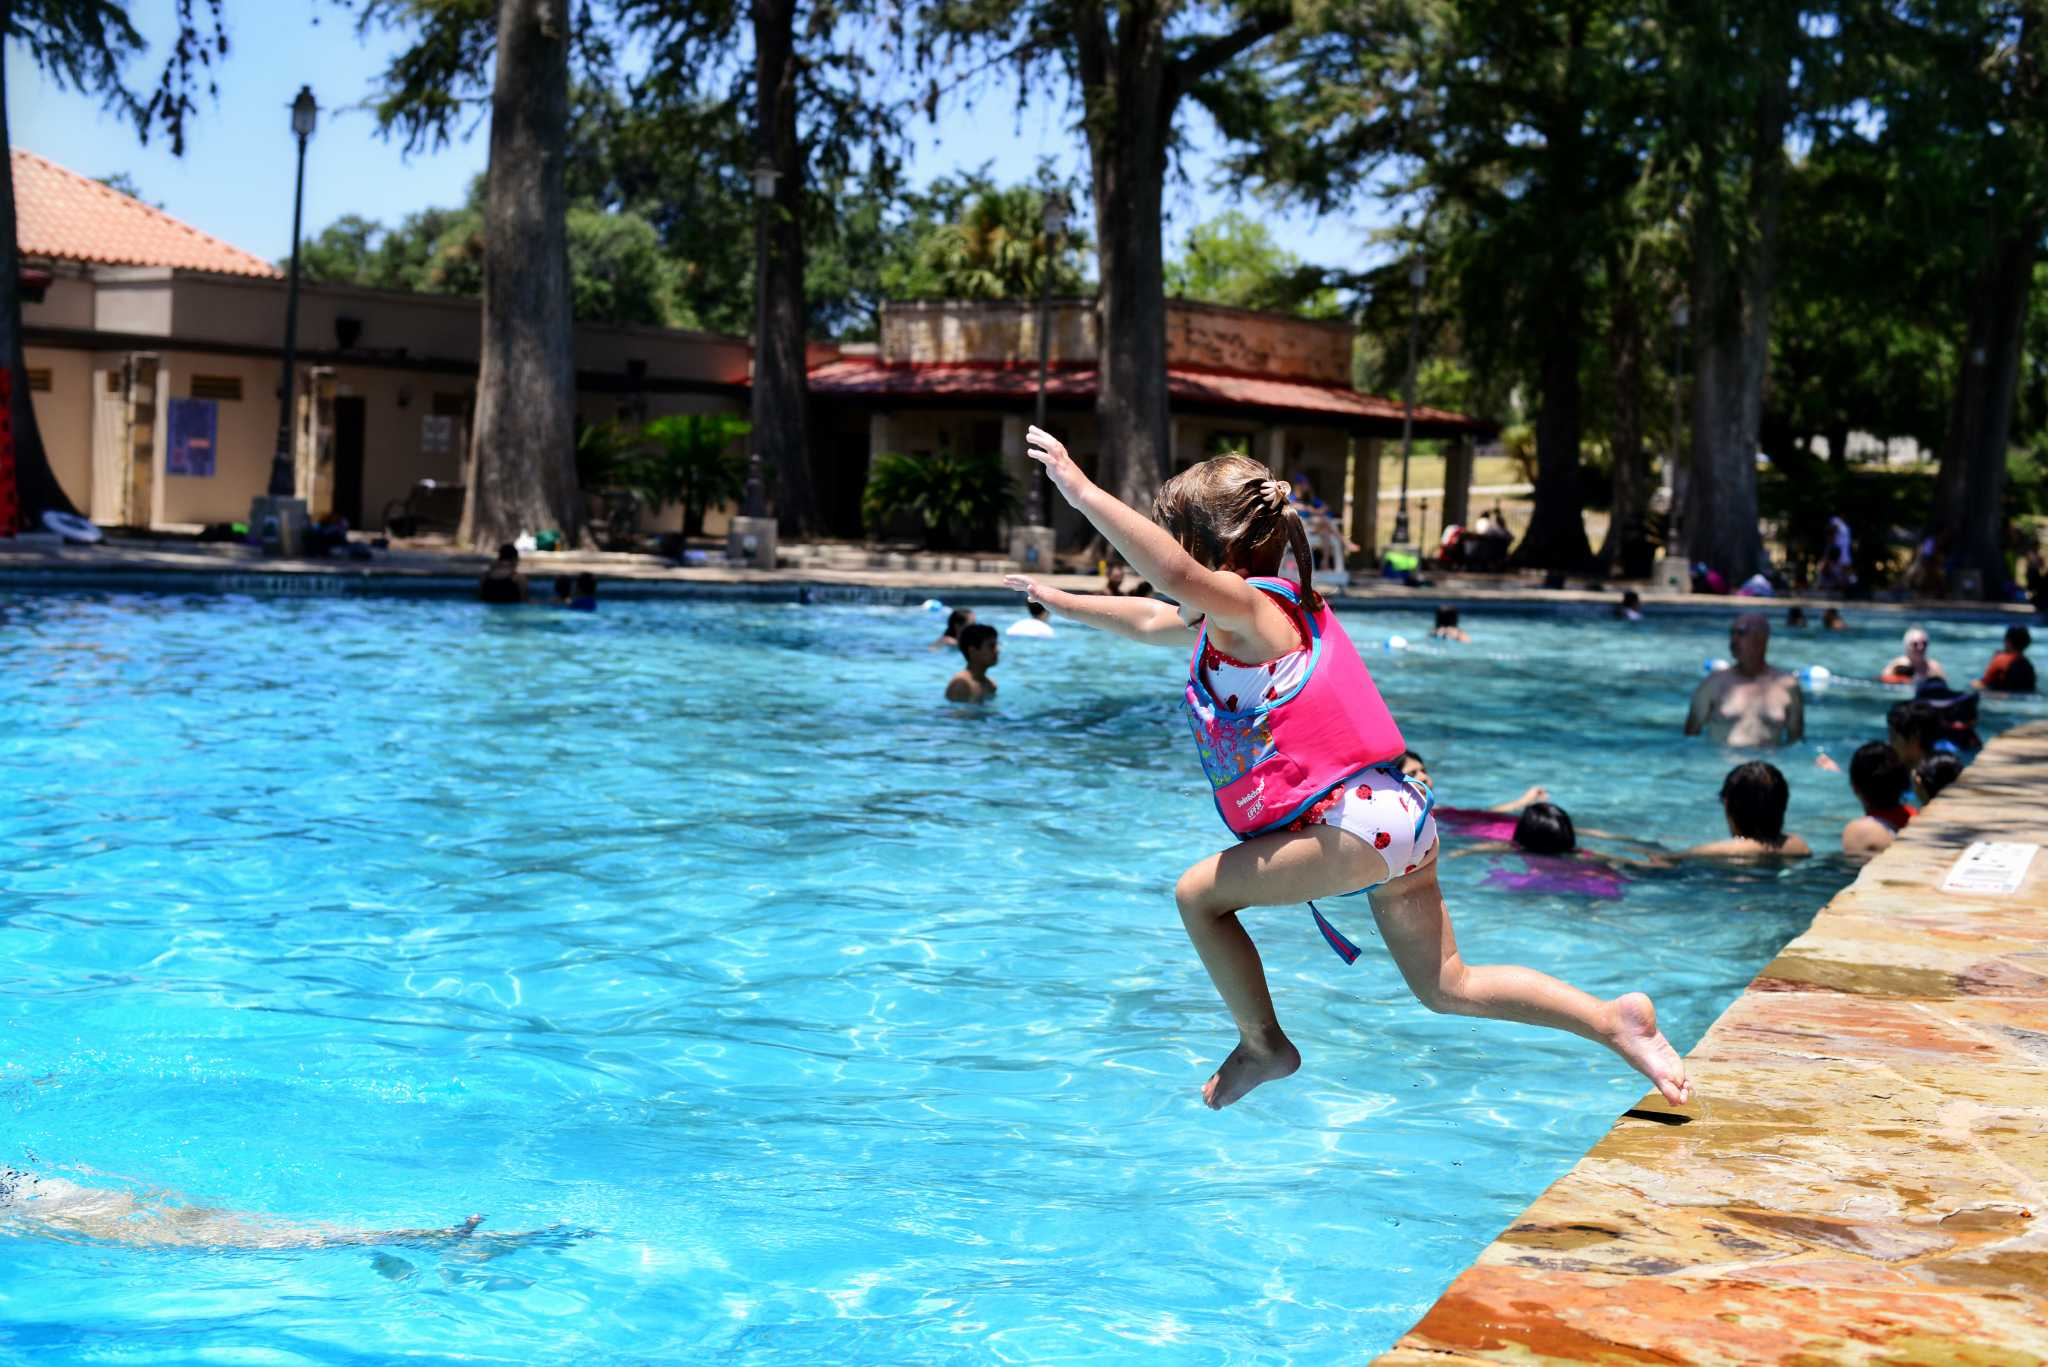 23 Public Pools Have Opened For The Summer In San Antonio